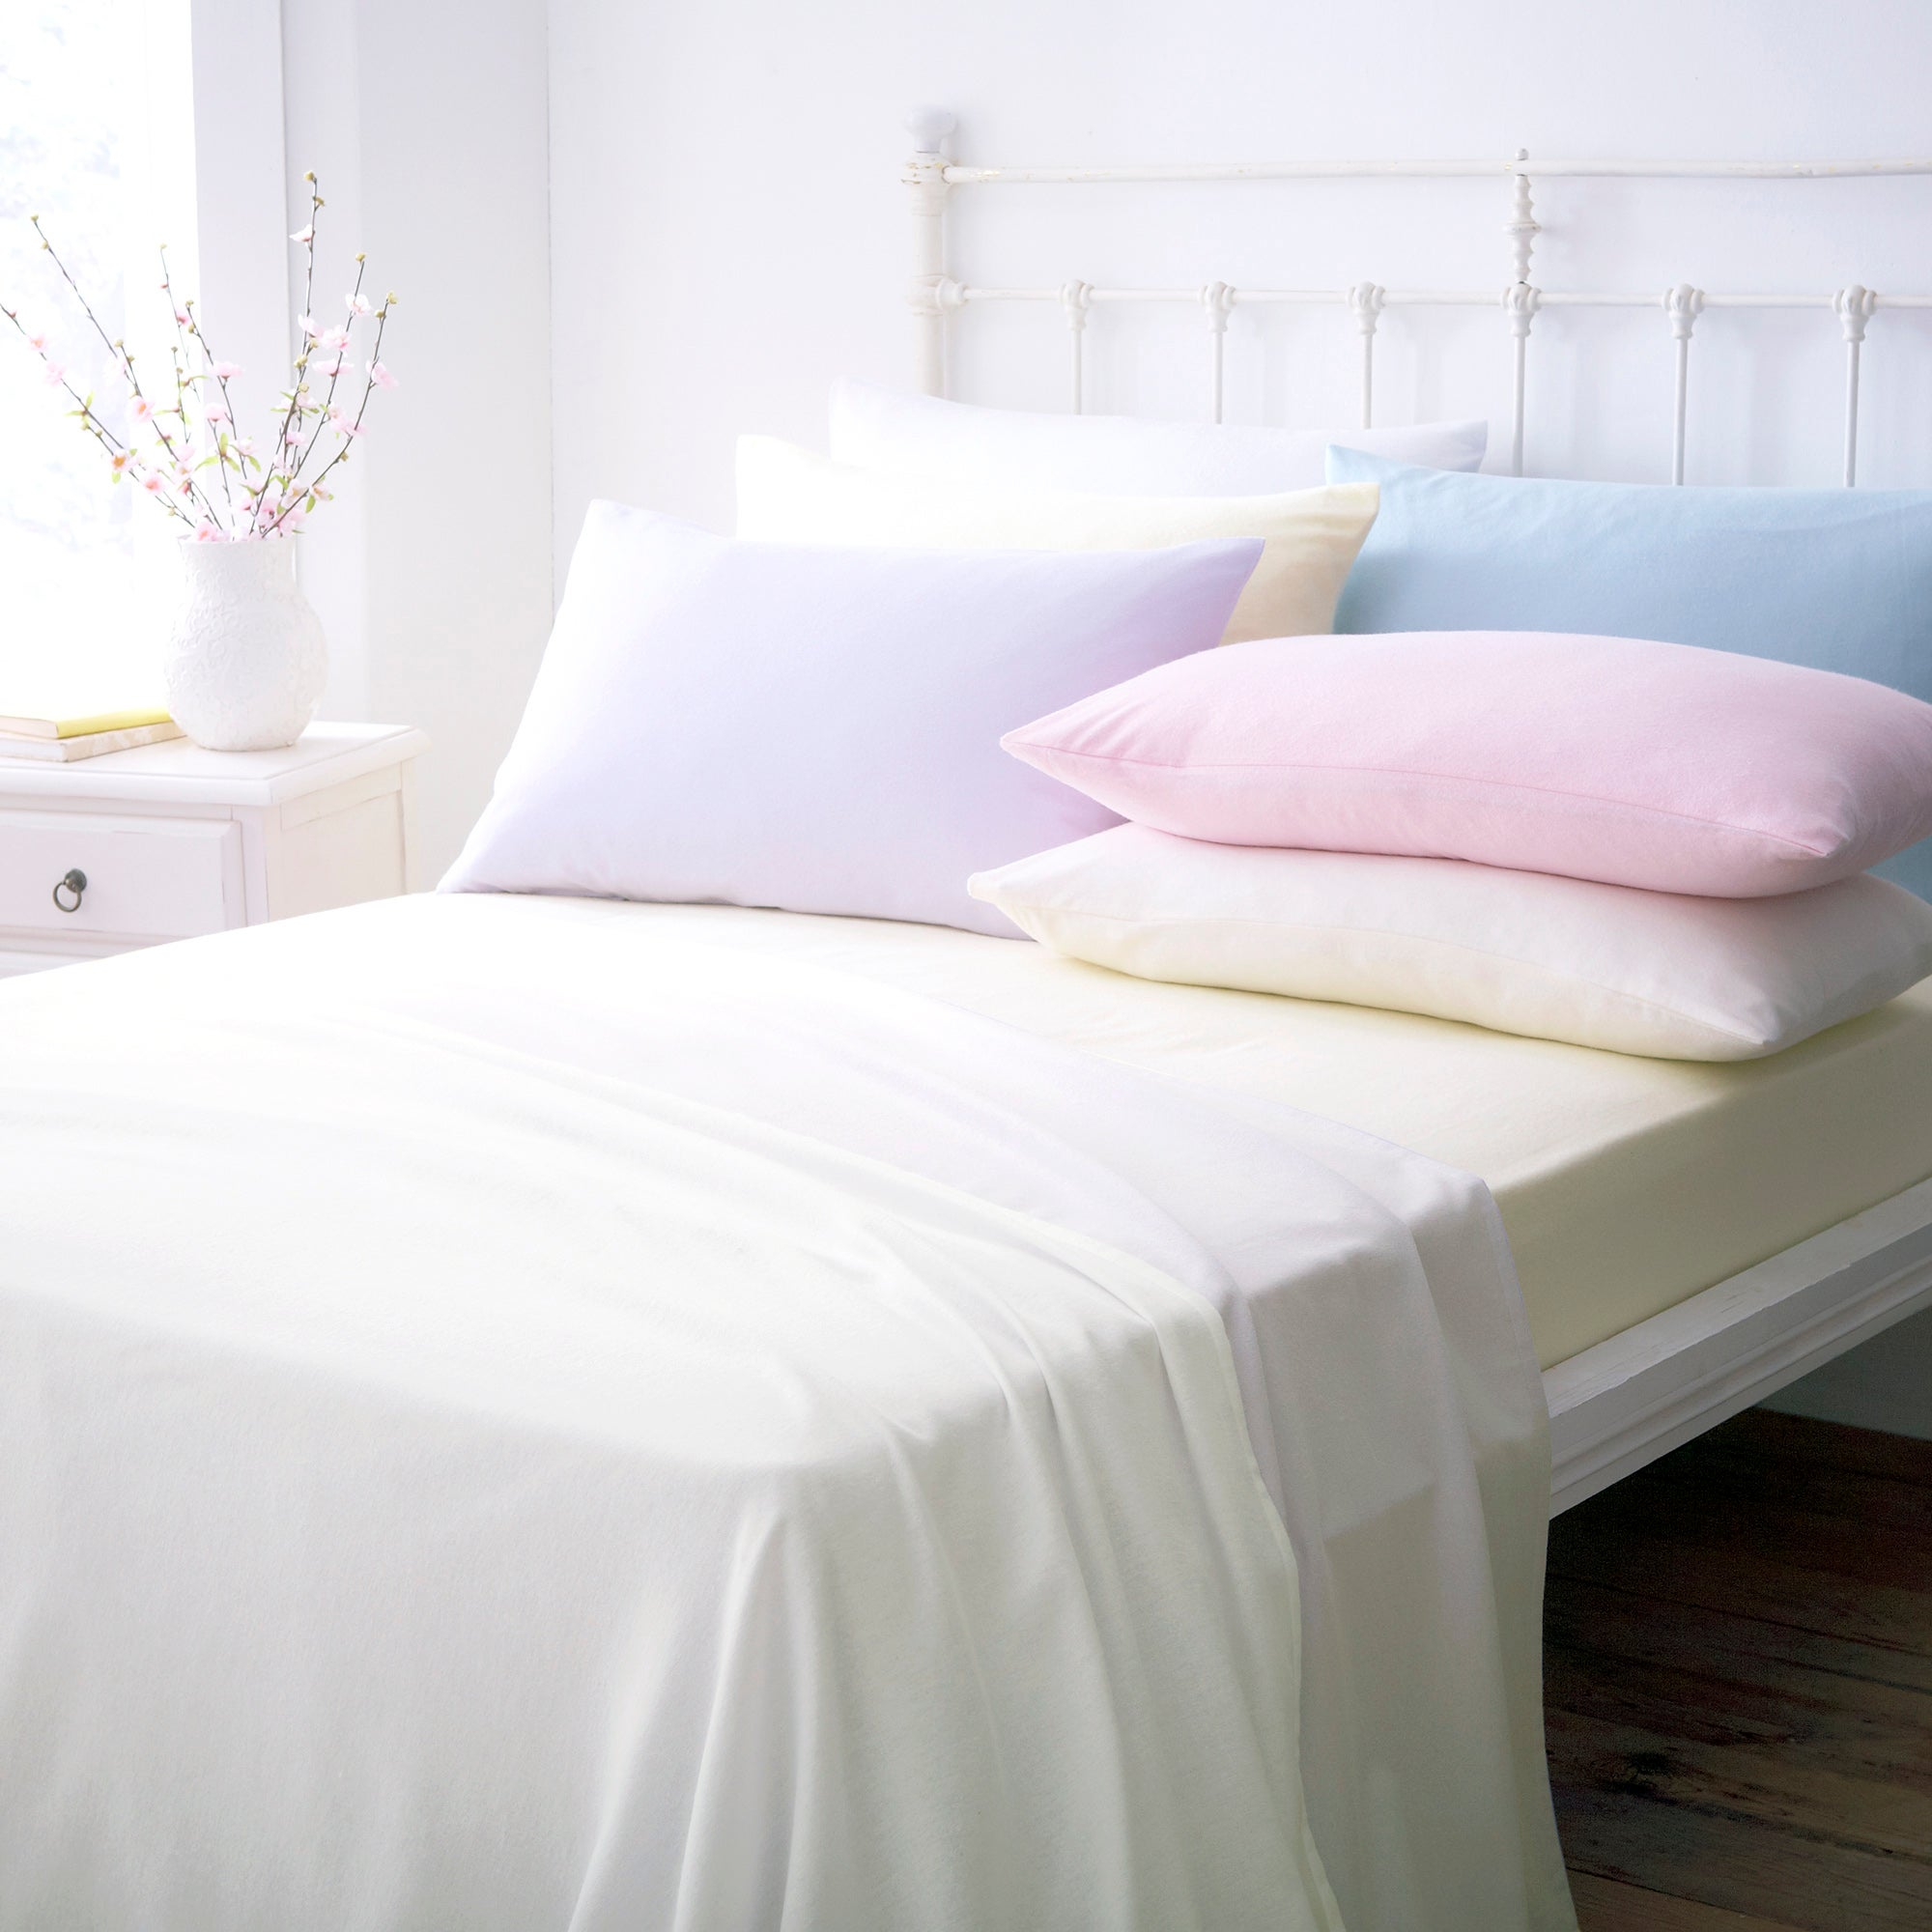 Brushed Cotton Sheet Sets